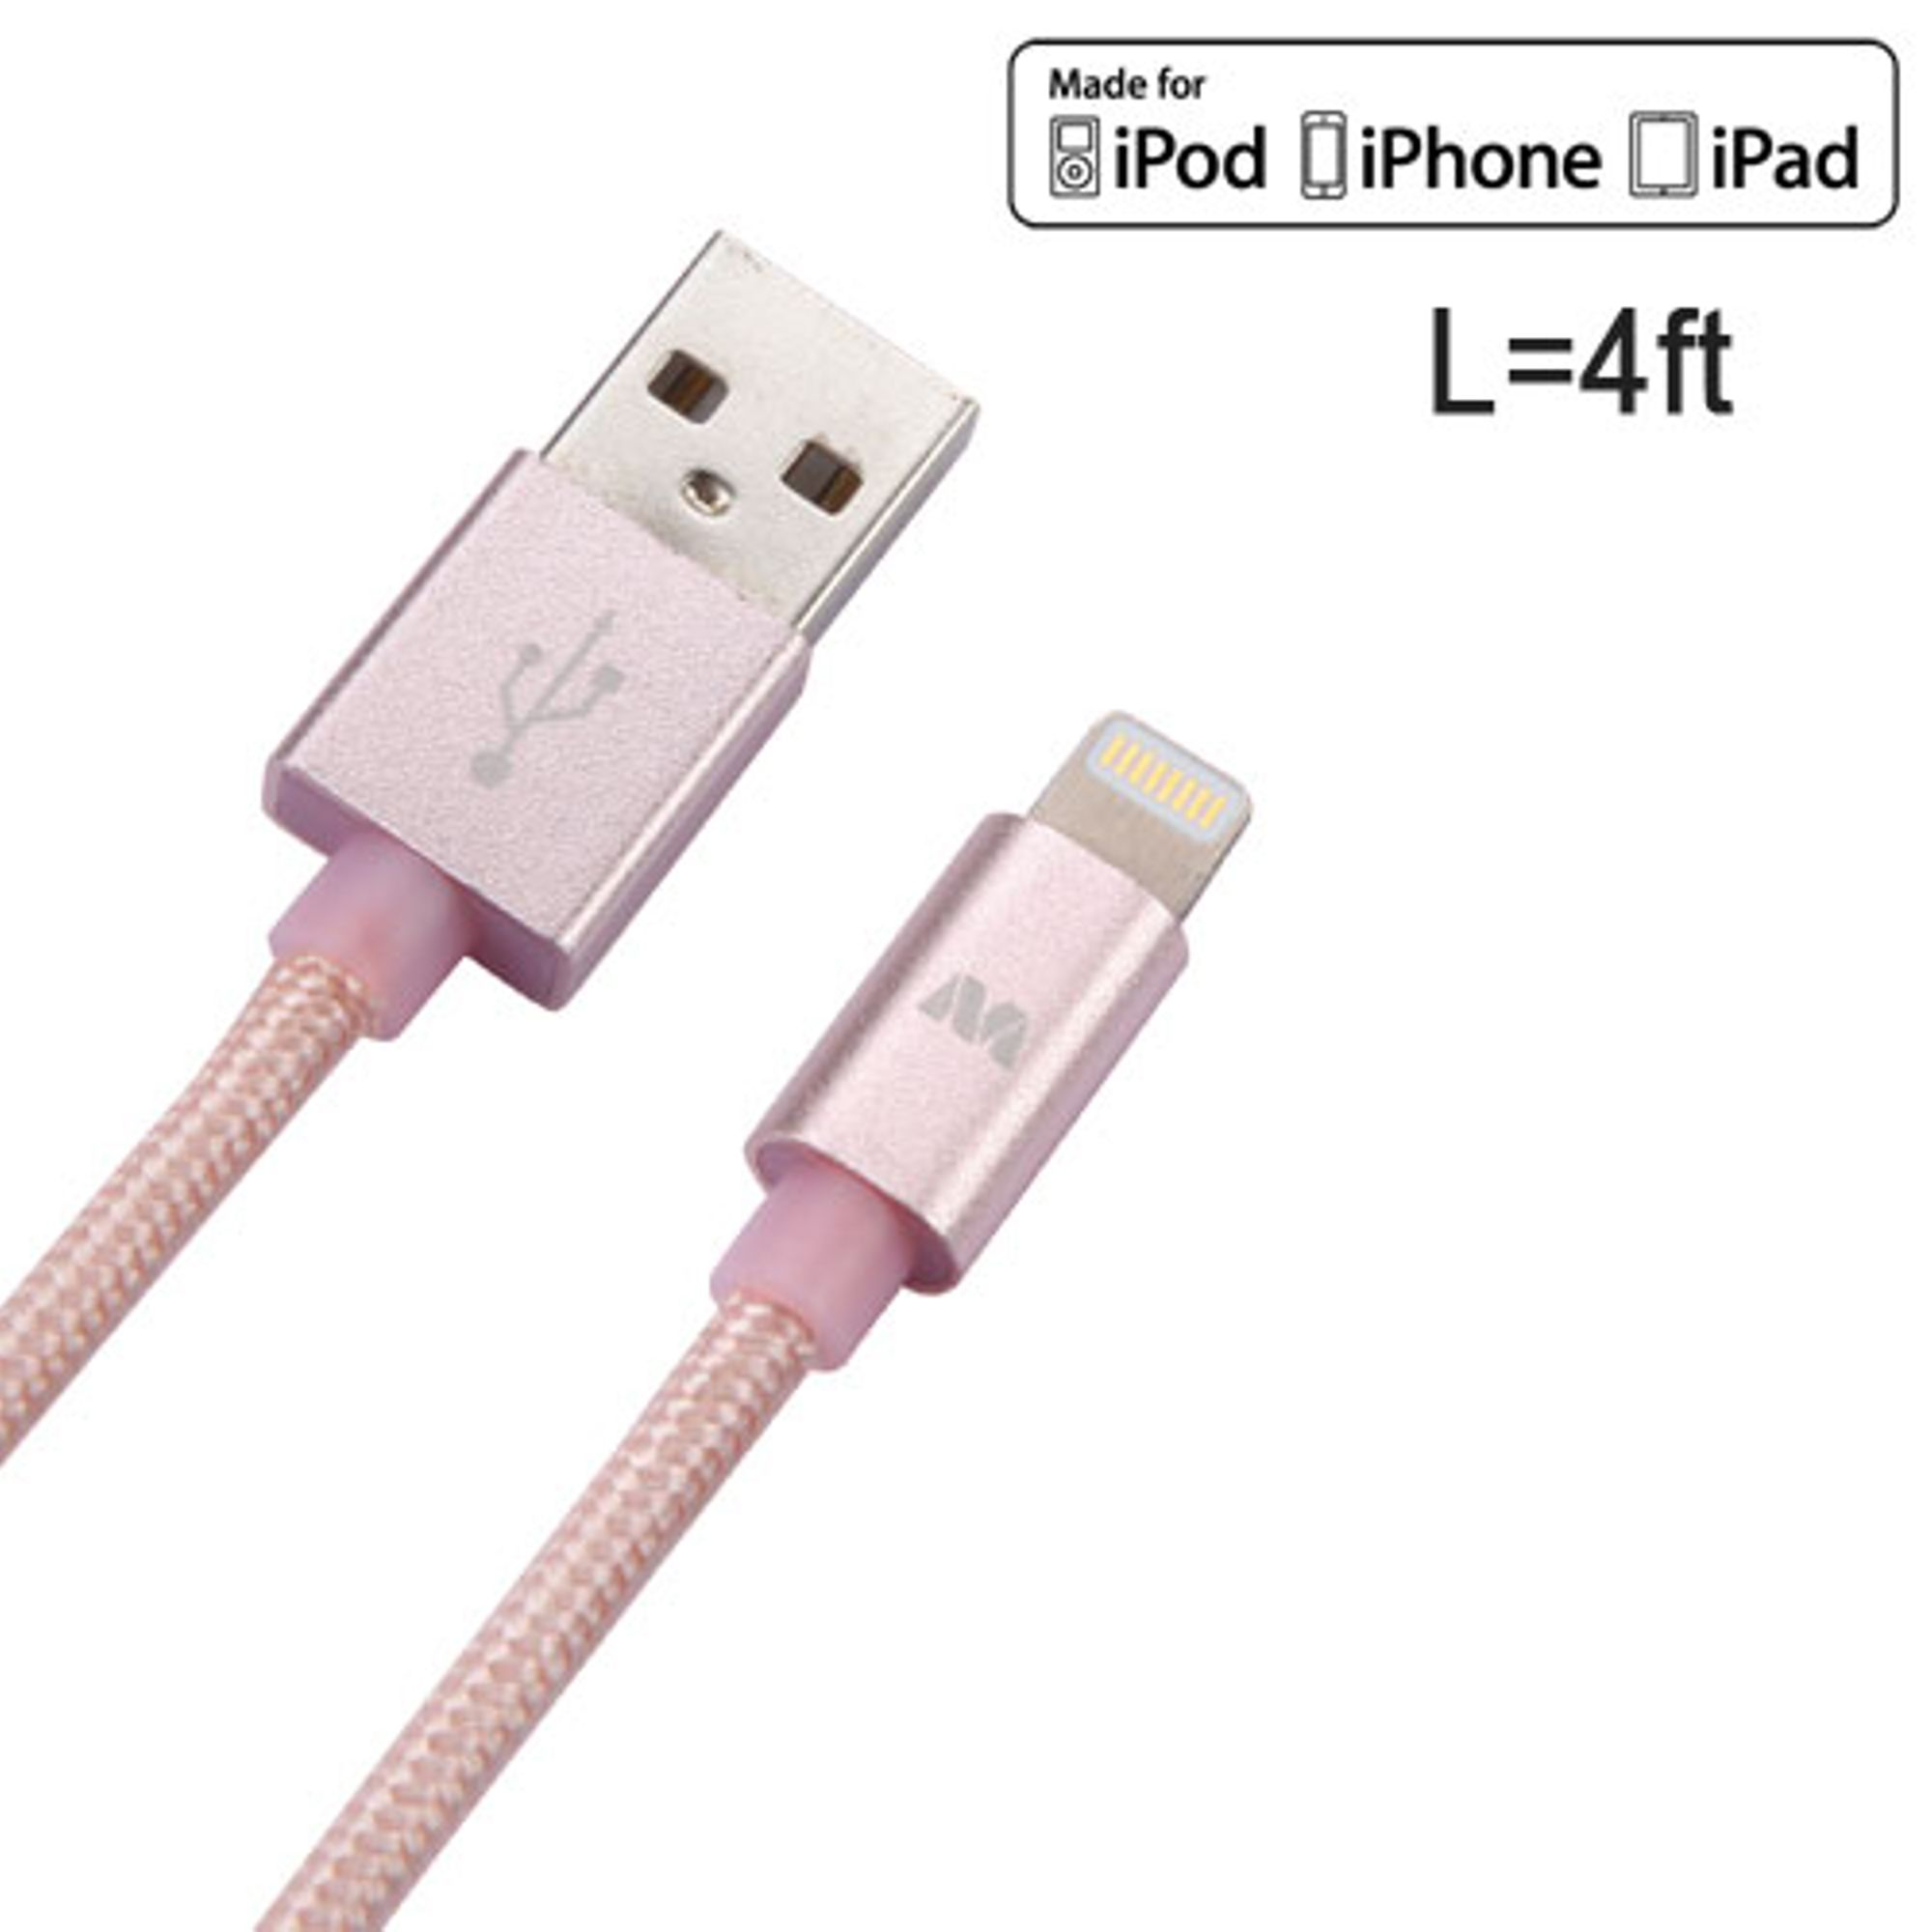 Insten 4ft Nylon Braided USB A to Lightning Cable Charging Cord Apple MFi Certified for iPhone X XS 8 7 6 6s Plus SE 5S iPod Touch 5th 6th generation iPad Mini Air Pro